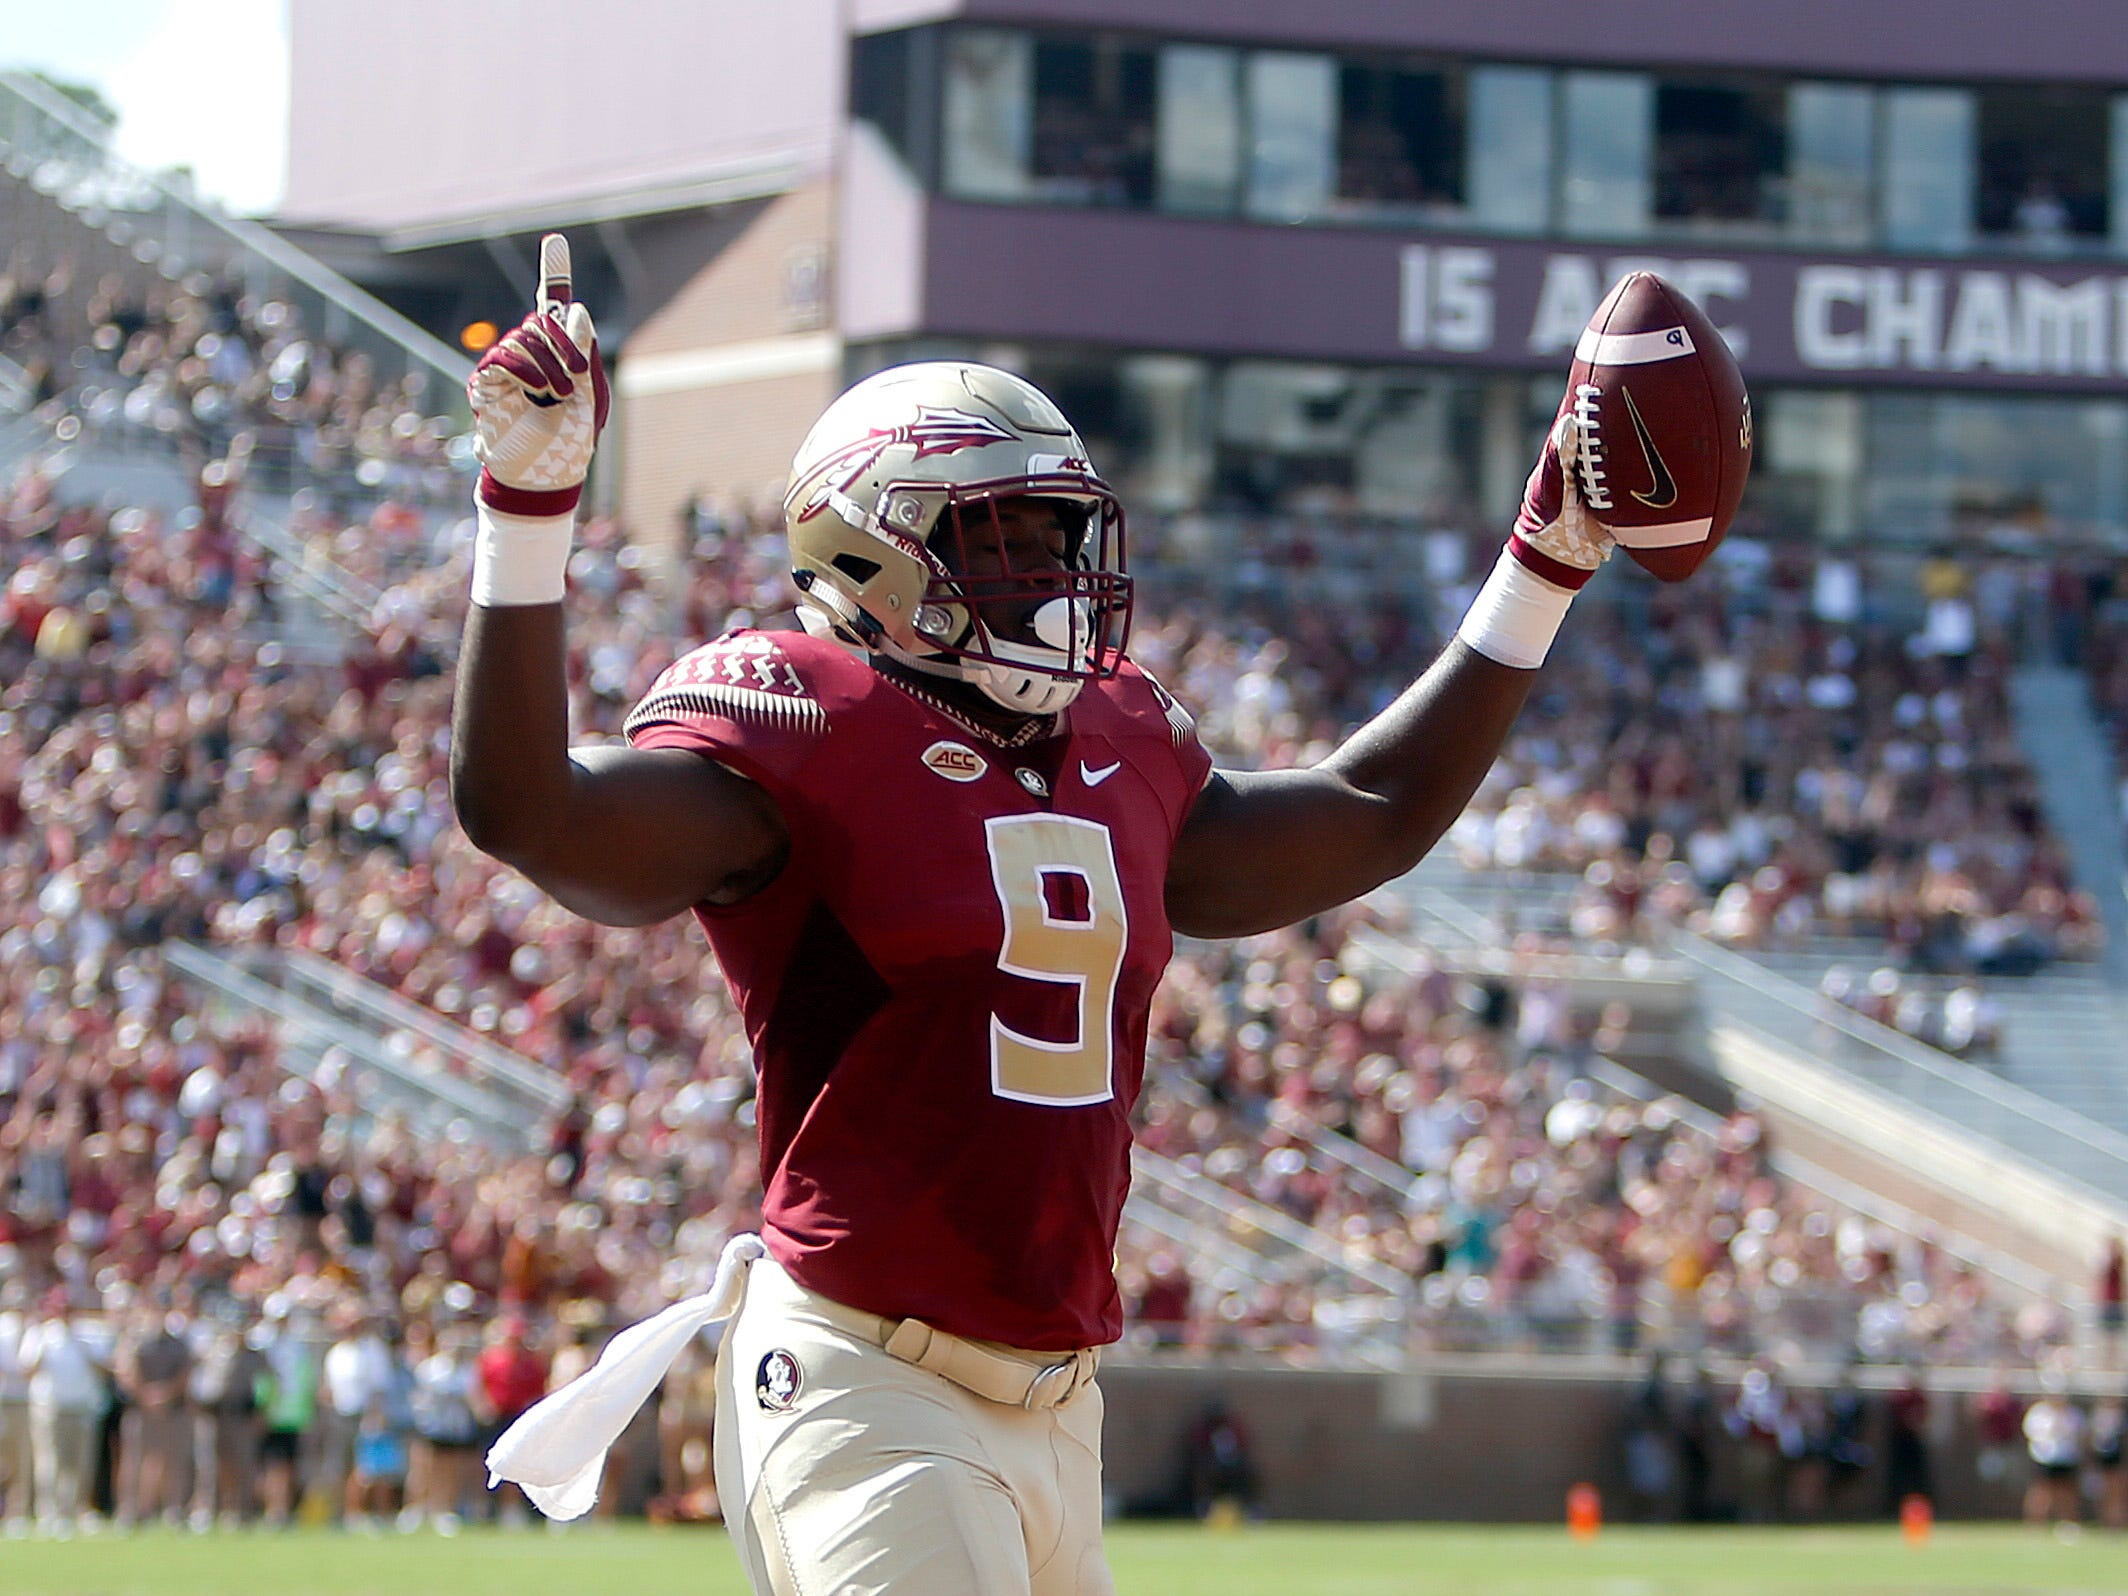 Sep 22, 2018; Tallahassee, FL, USA; Florida State Seminoles running back Jacques Patrick (9) celebrates a touchdown during the first quarter of play at Doak Campbell Stadium.